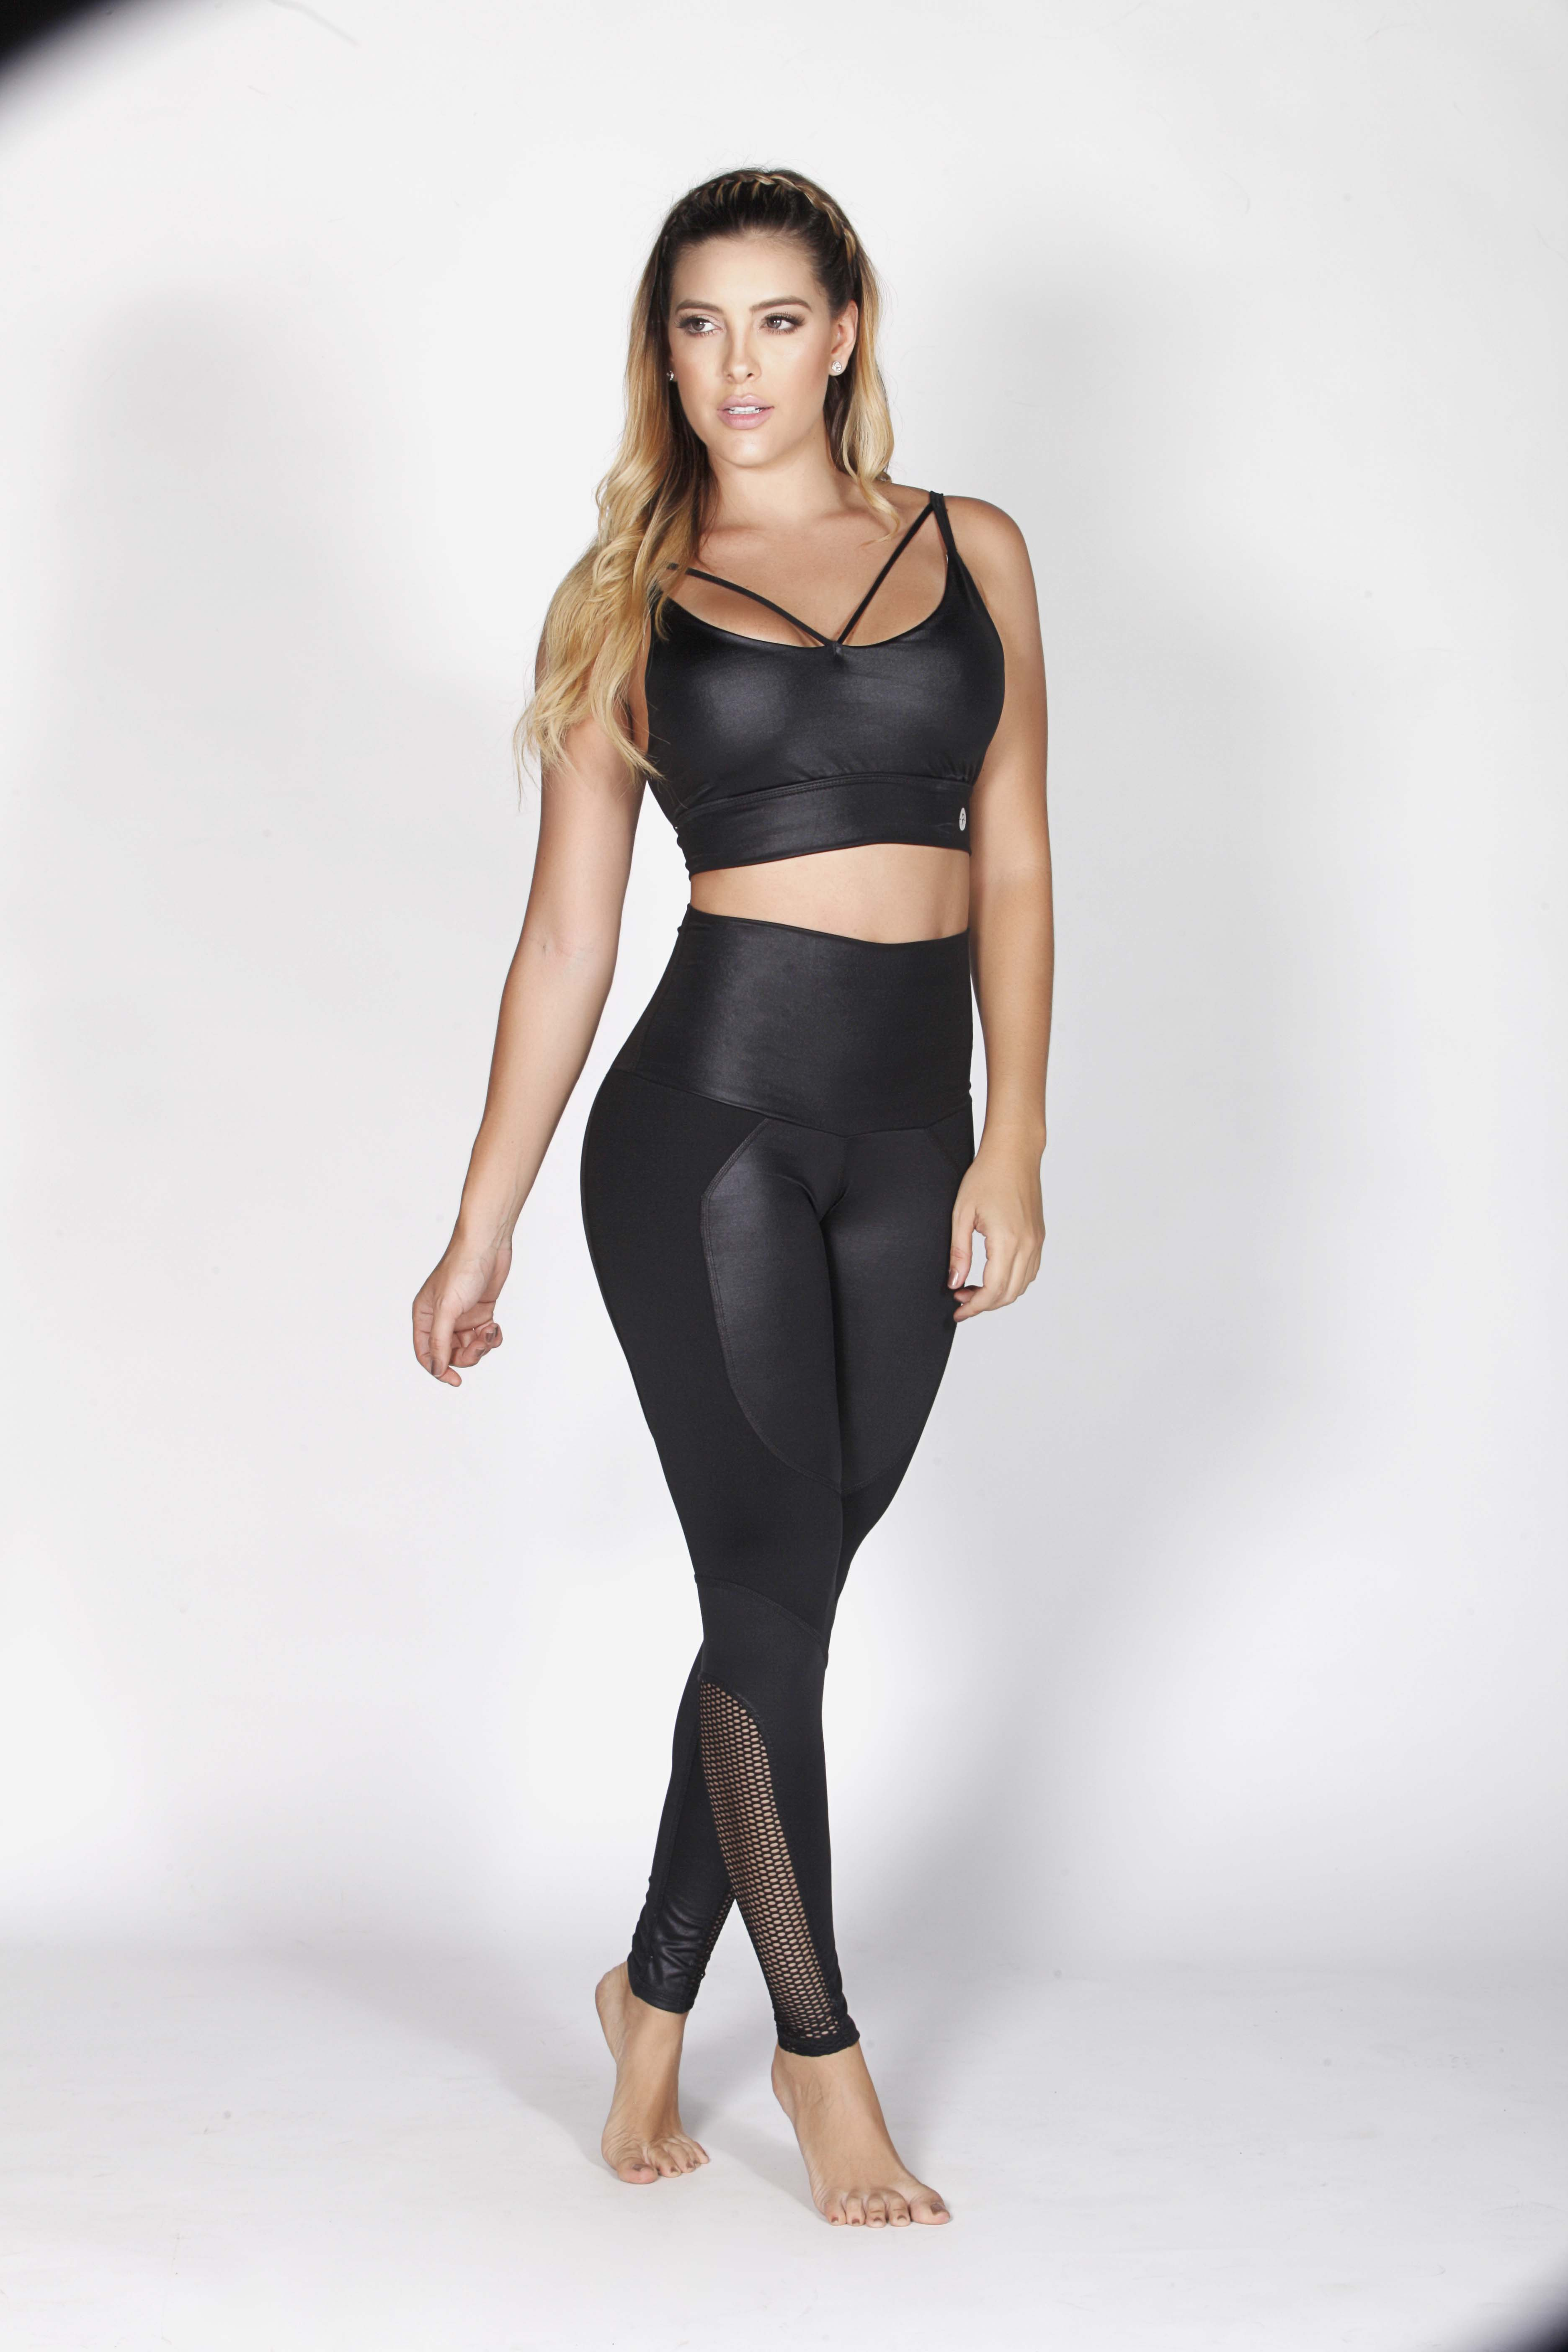 High Waisted Fitness Leggings | Leggings Online Shop Dubai ...